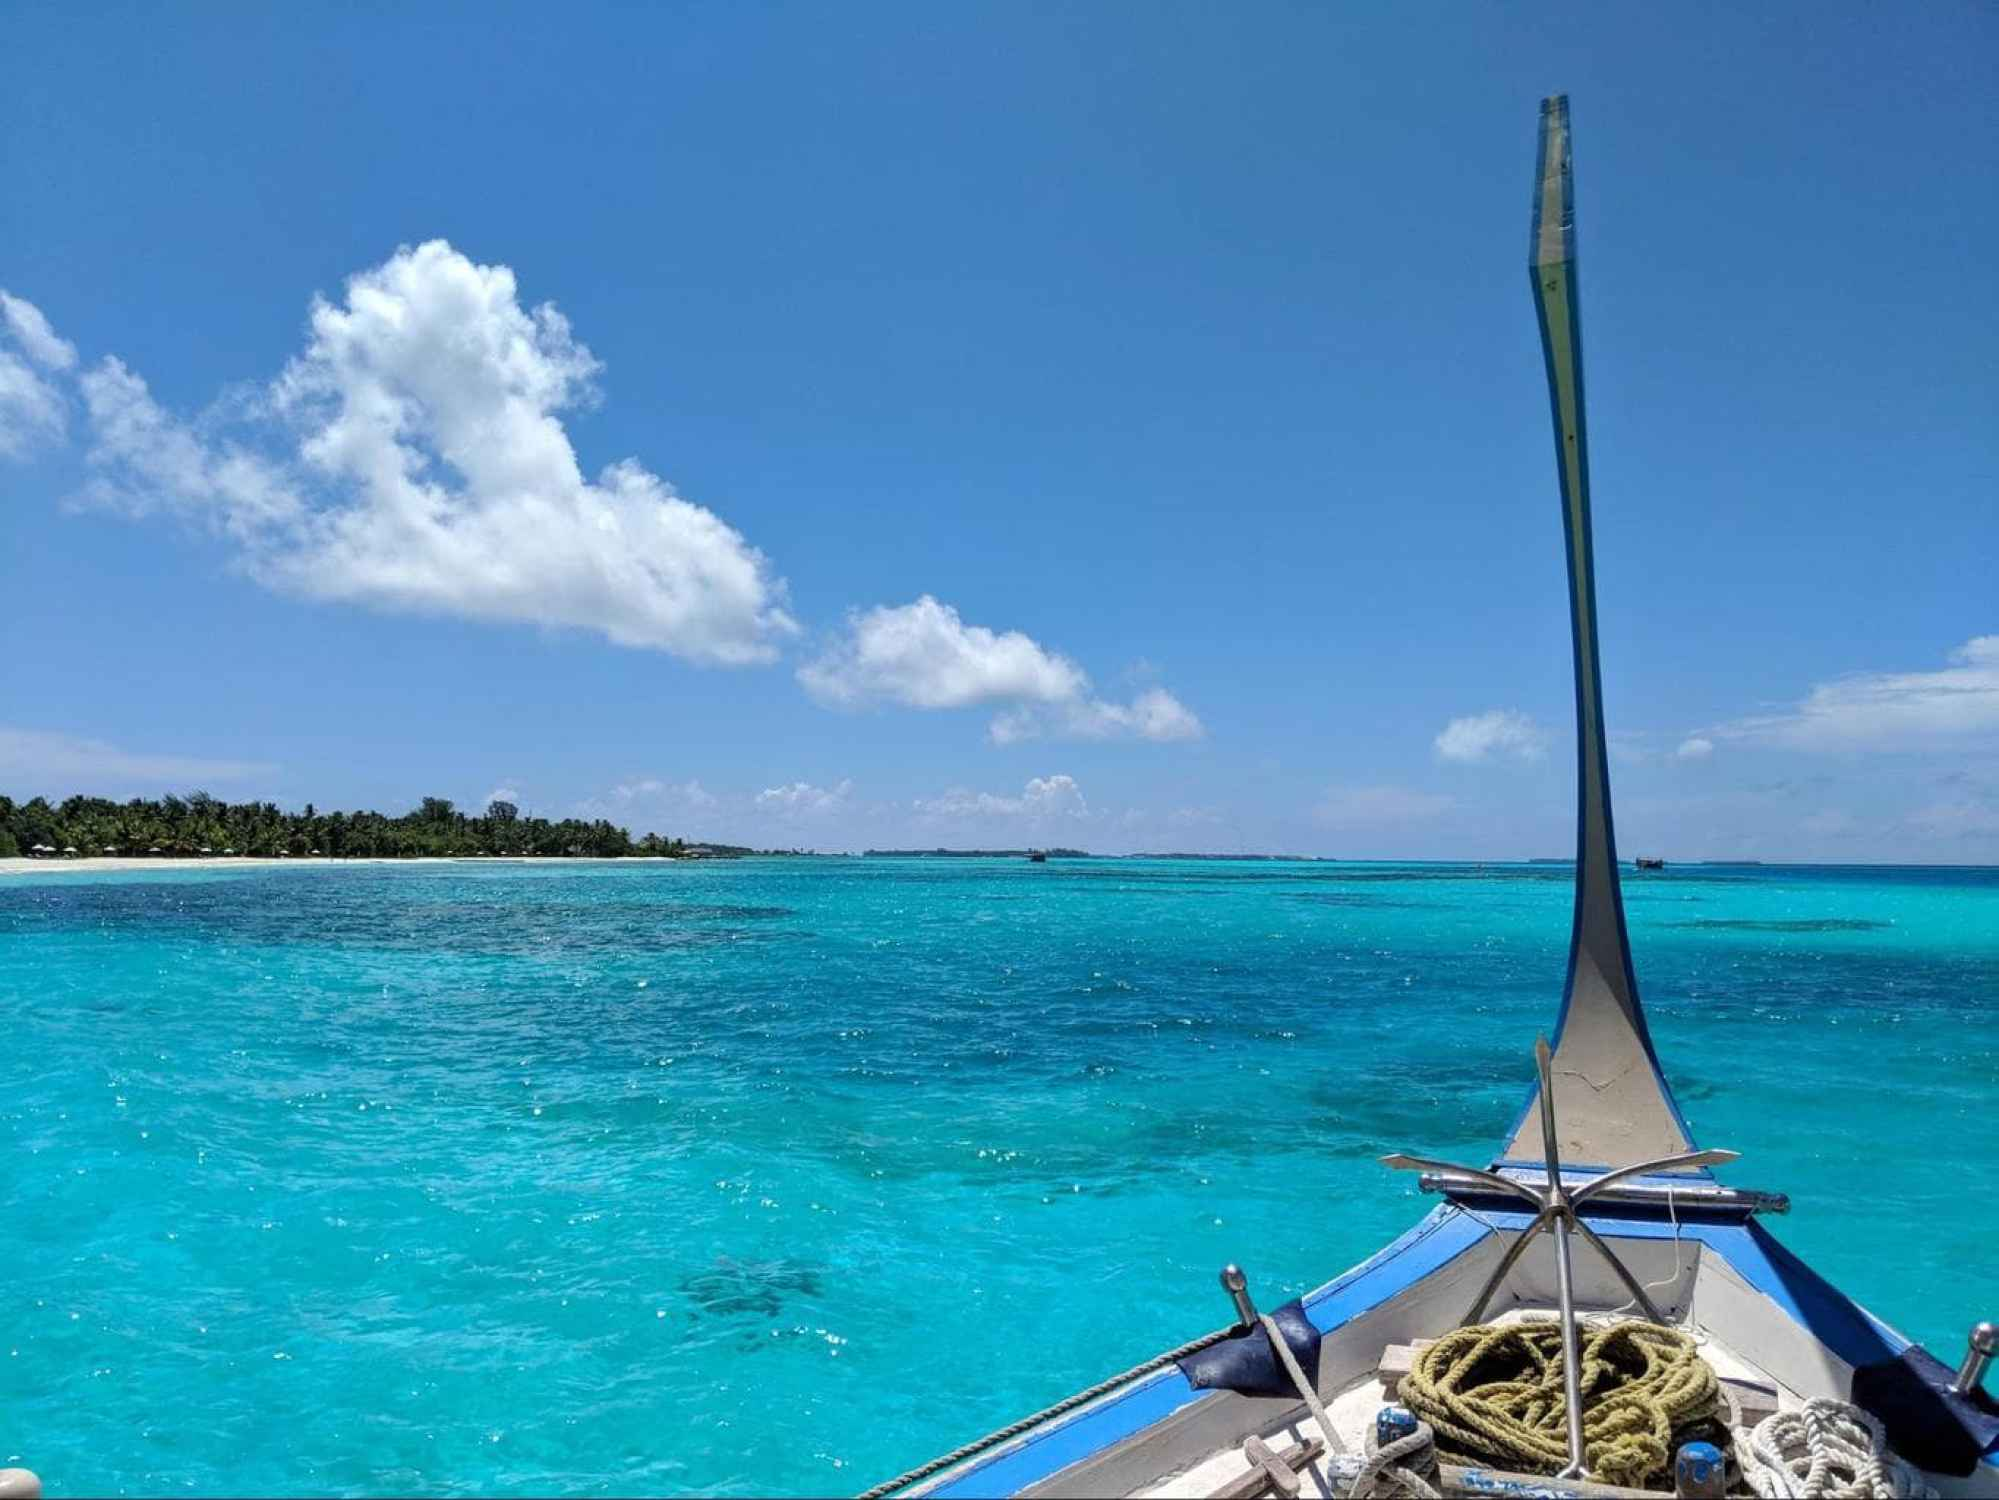 Dhoni boat from LUX* Maldives